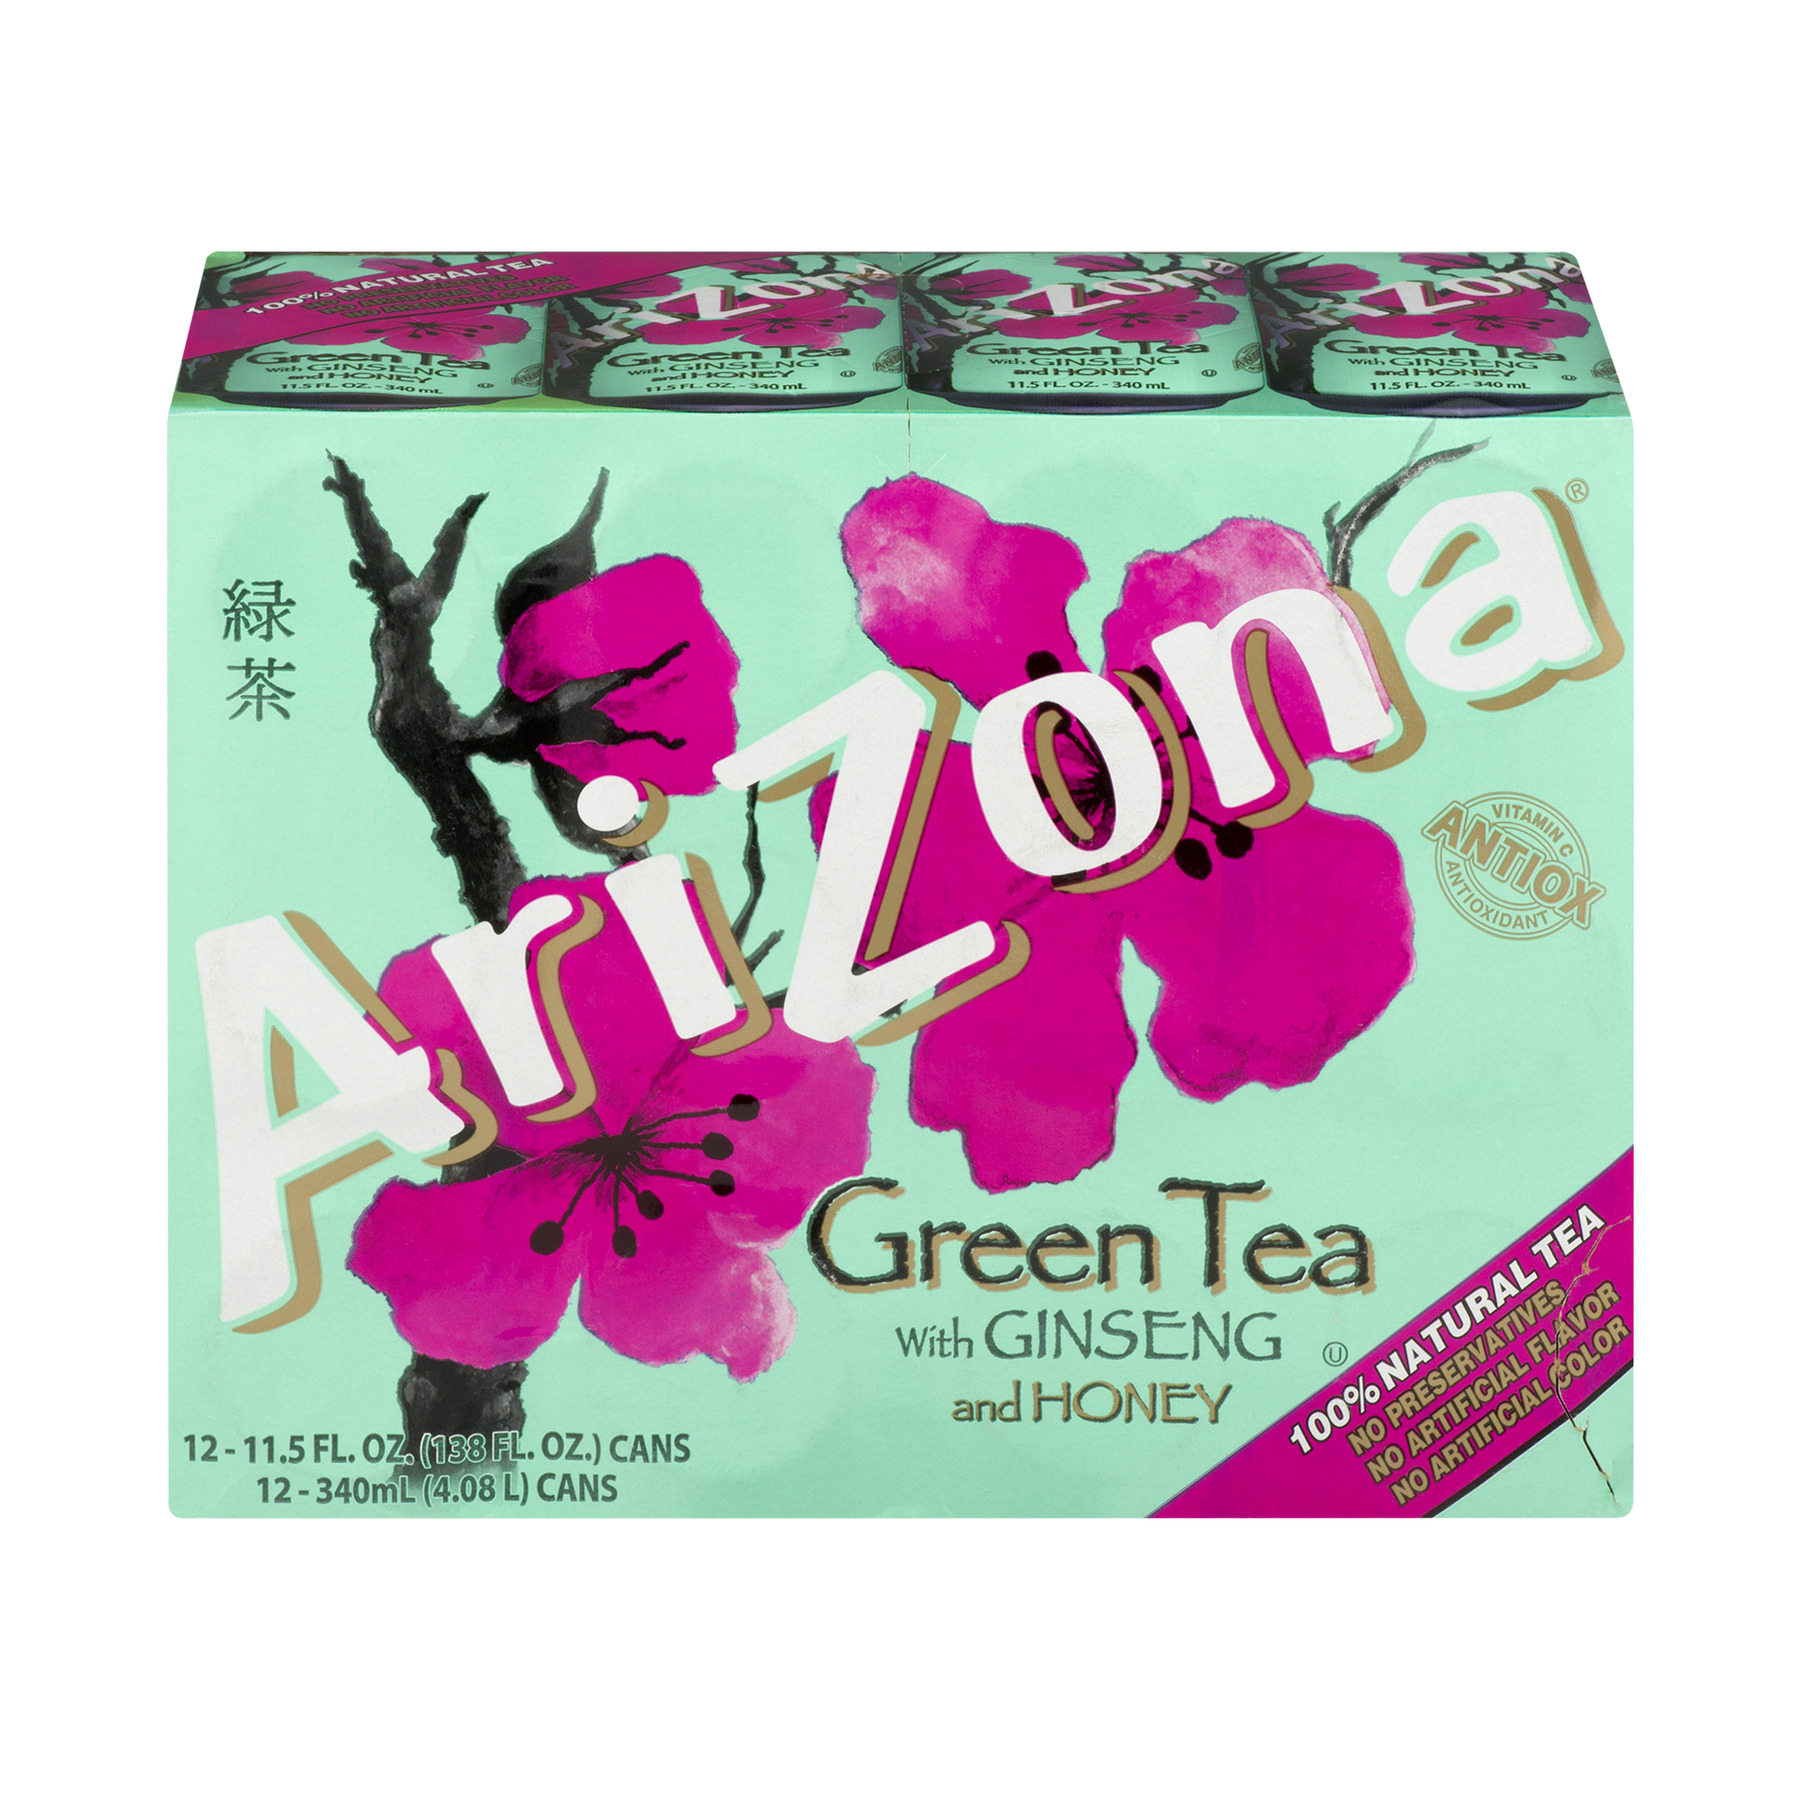 Arizona Green Tea With Ginseng And Honey, 11.5 Fl Oz, 12 Count